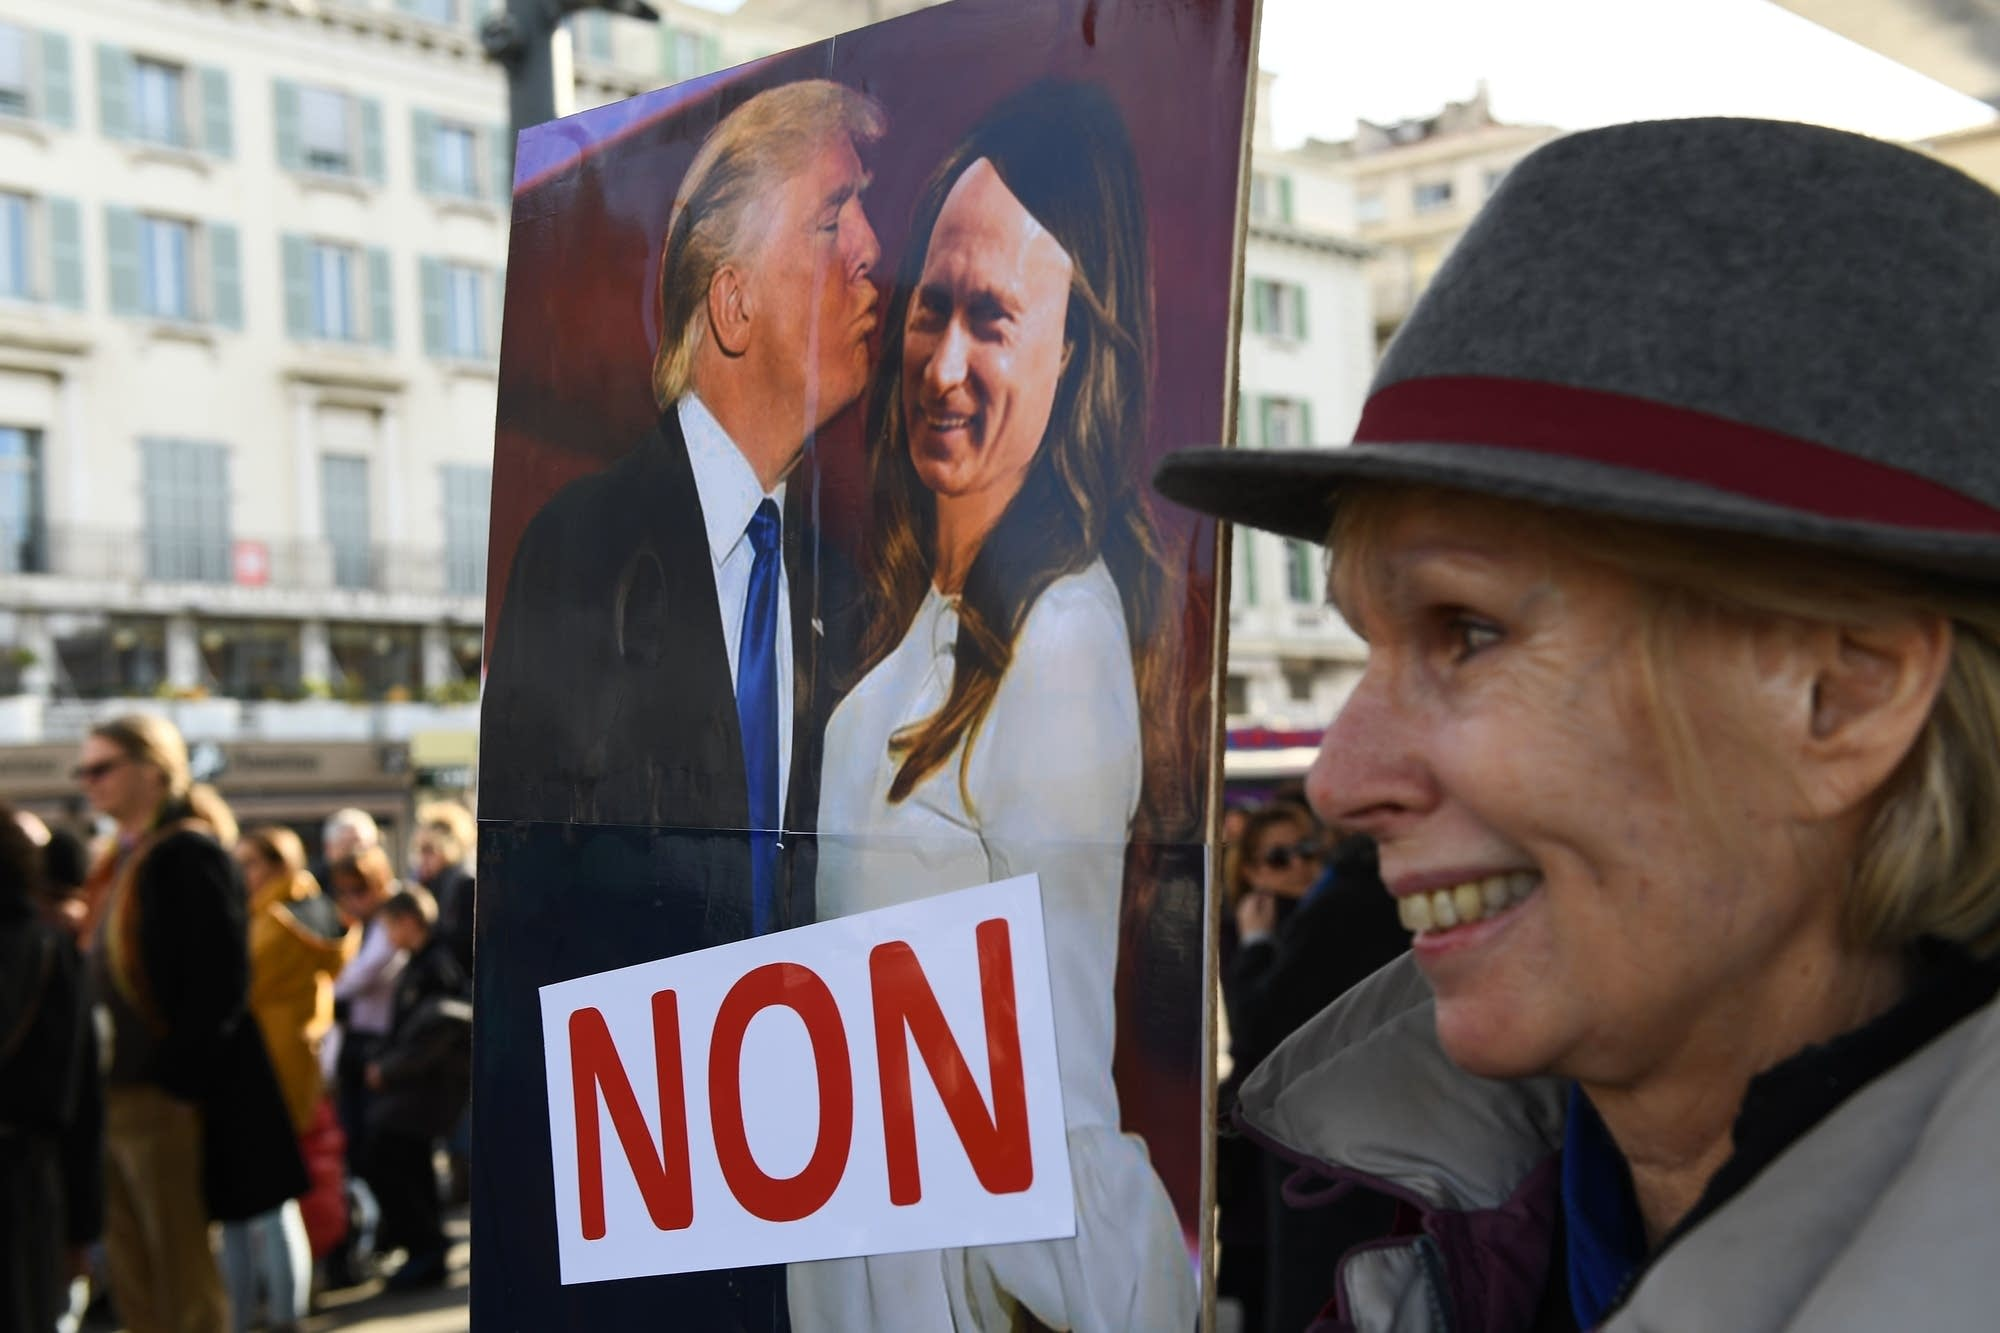 Marseille, France: A protestor holds a placard of Putin and Trump.